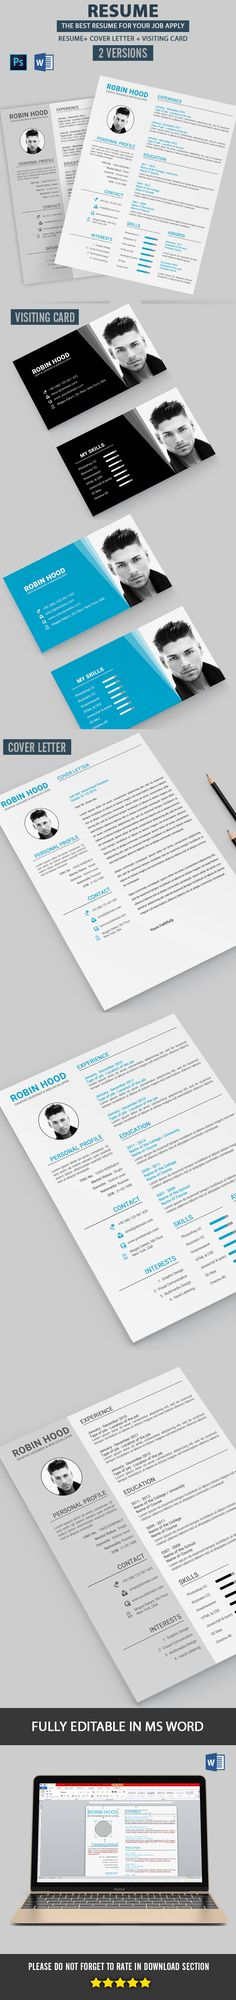 Resume Resume and Stationery - templates for resumes microsoft word